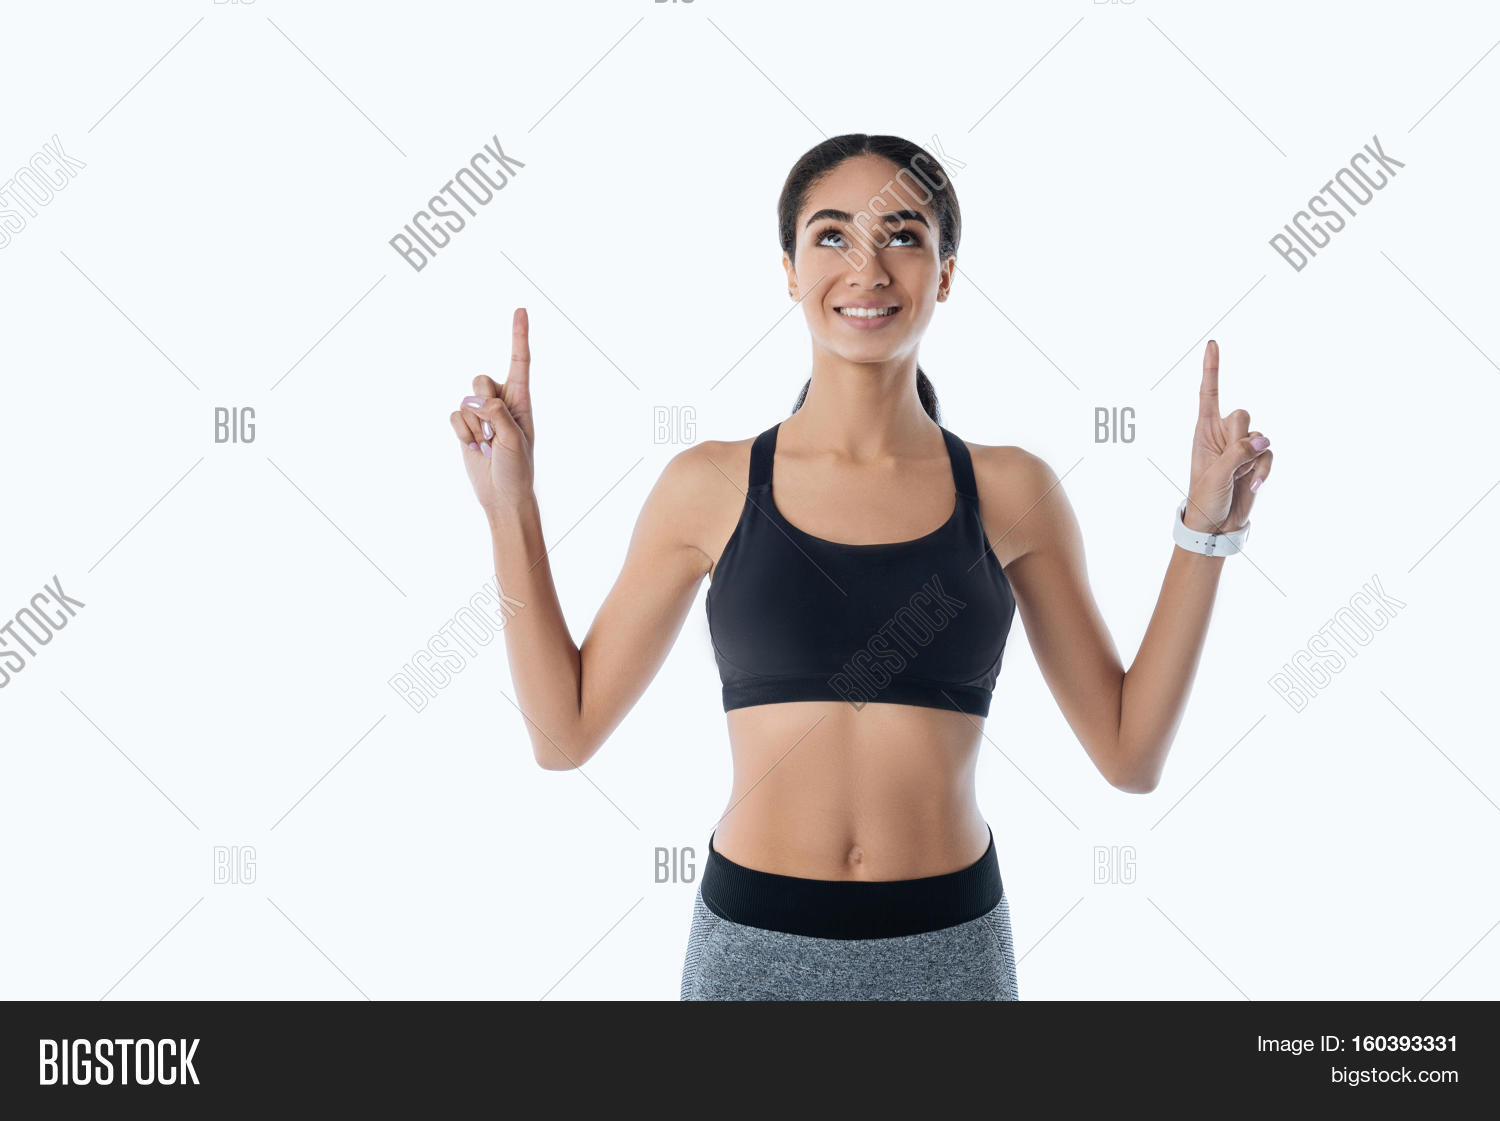 hight resolution of healthy sporty girl holding arms bent in elbow pointing upwards